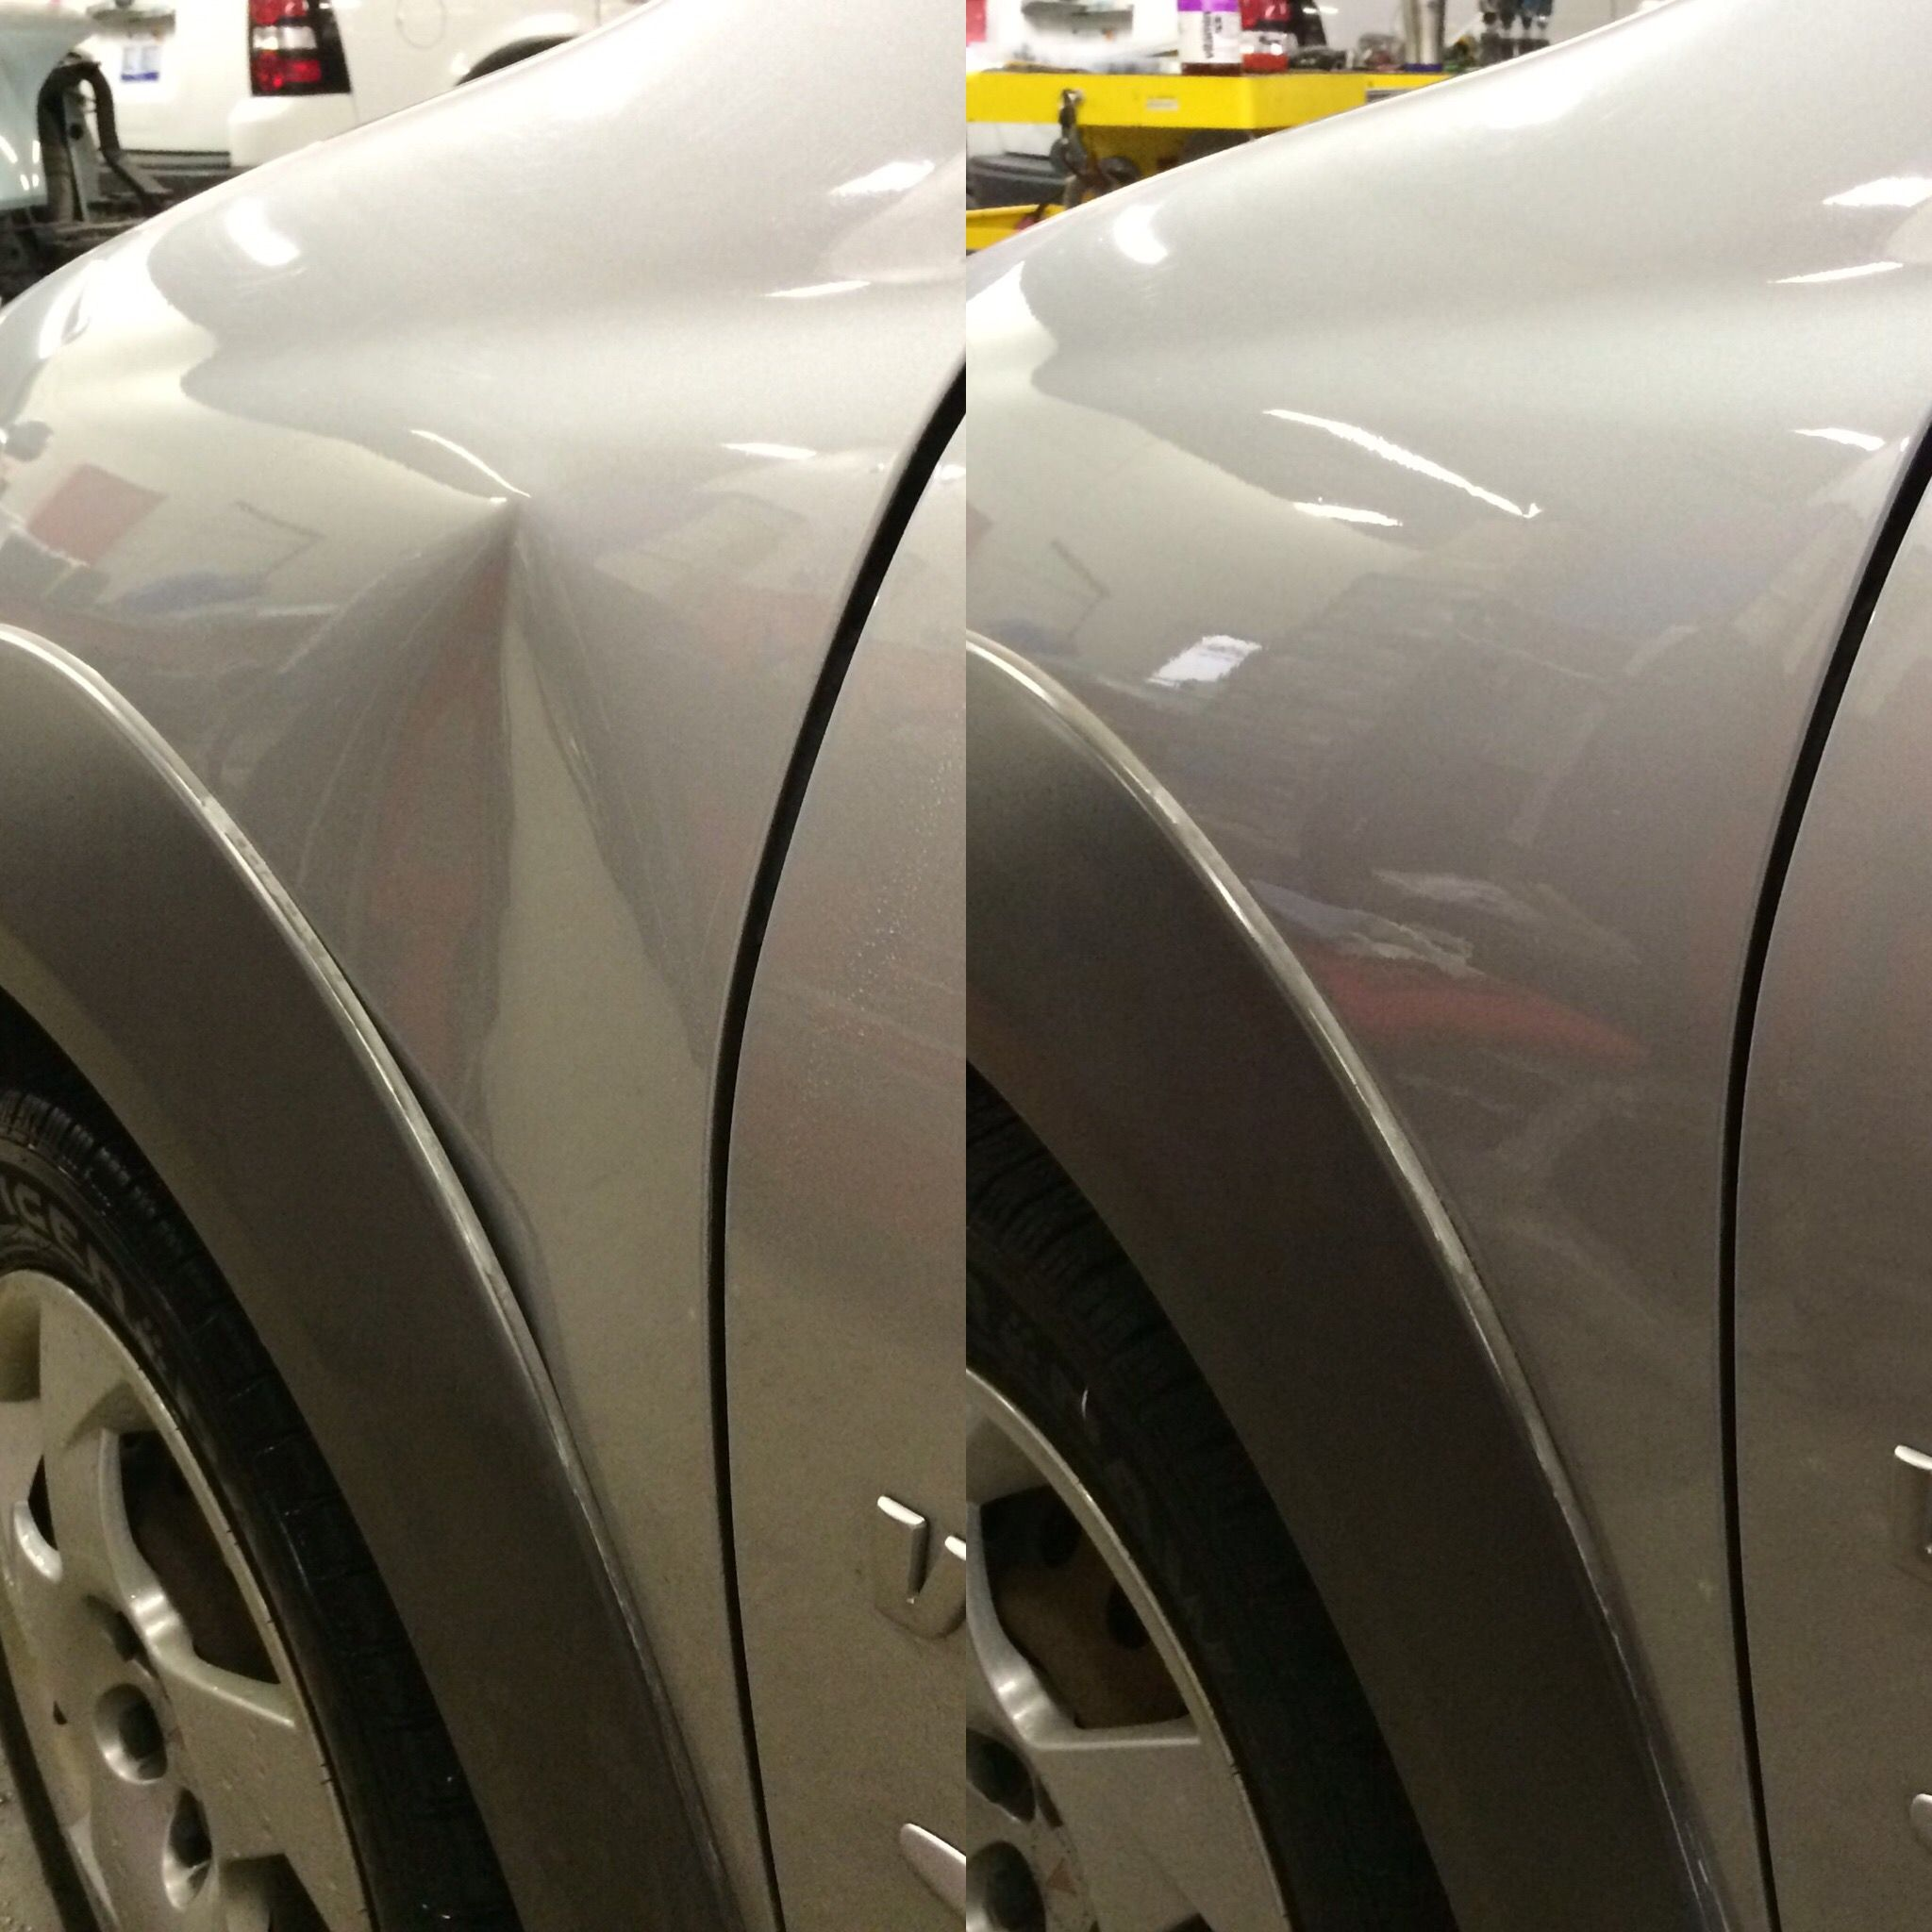 Most Body Shops Would Replace This Fender And Paint A New One Which Would Then Require Blend Refinishing The Hood And Door F Mustang Cars The Body Shop Repair